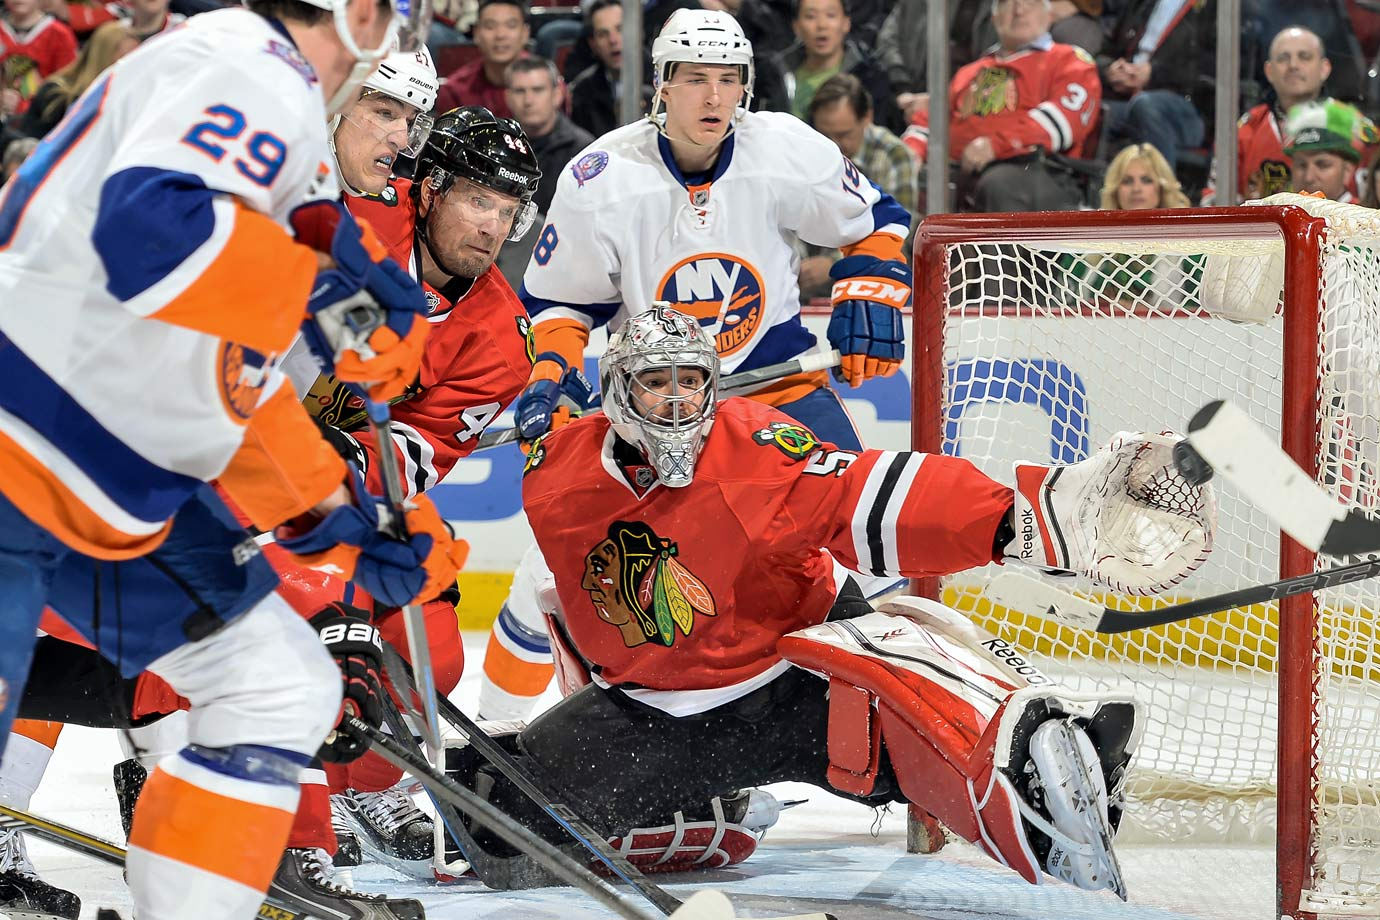 """Despite backstopping a Stanley Cup winner, Crawford has been regarded by many as the weak link in Chicago's armor, a beneficiary of reflected glory. That's just not the case. Consider his play this season, wherein the absence of Patrick Kane has stalled the offense and put more pressure on the Hawks' defense. Crawford responded with numbers that could top his career bests, including a .925 save percentage and 30 wins. """"As the games get bigger,"""" said coach Joel Quenneville, """"he gets bigger."""""""